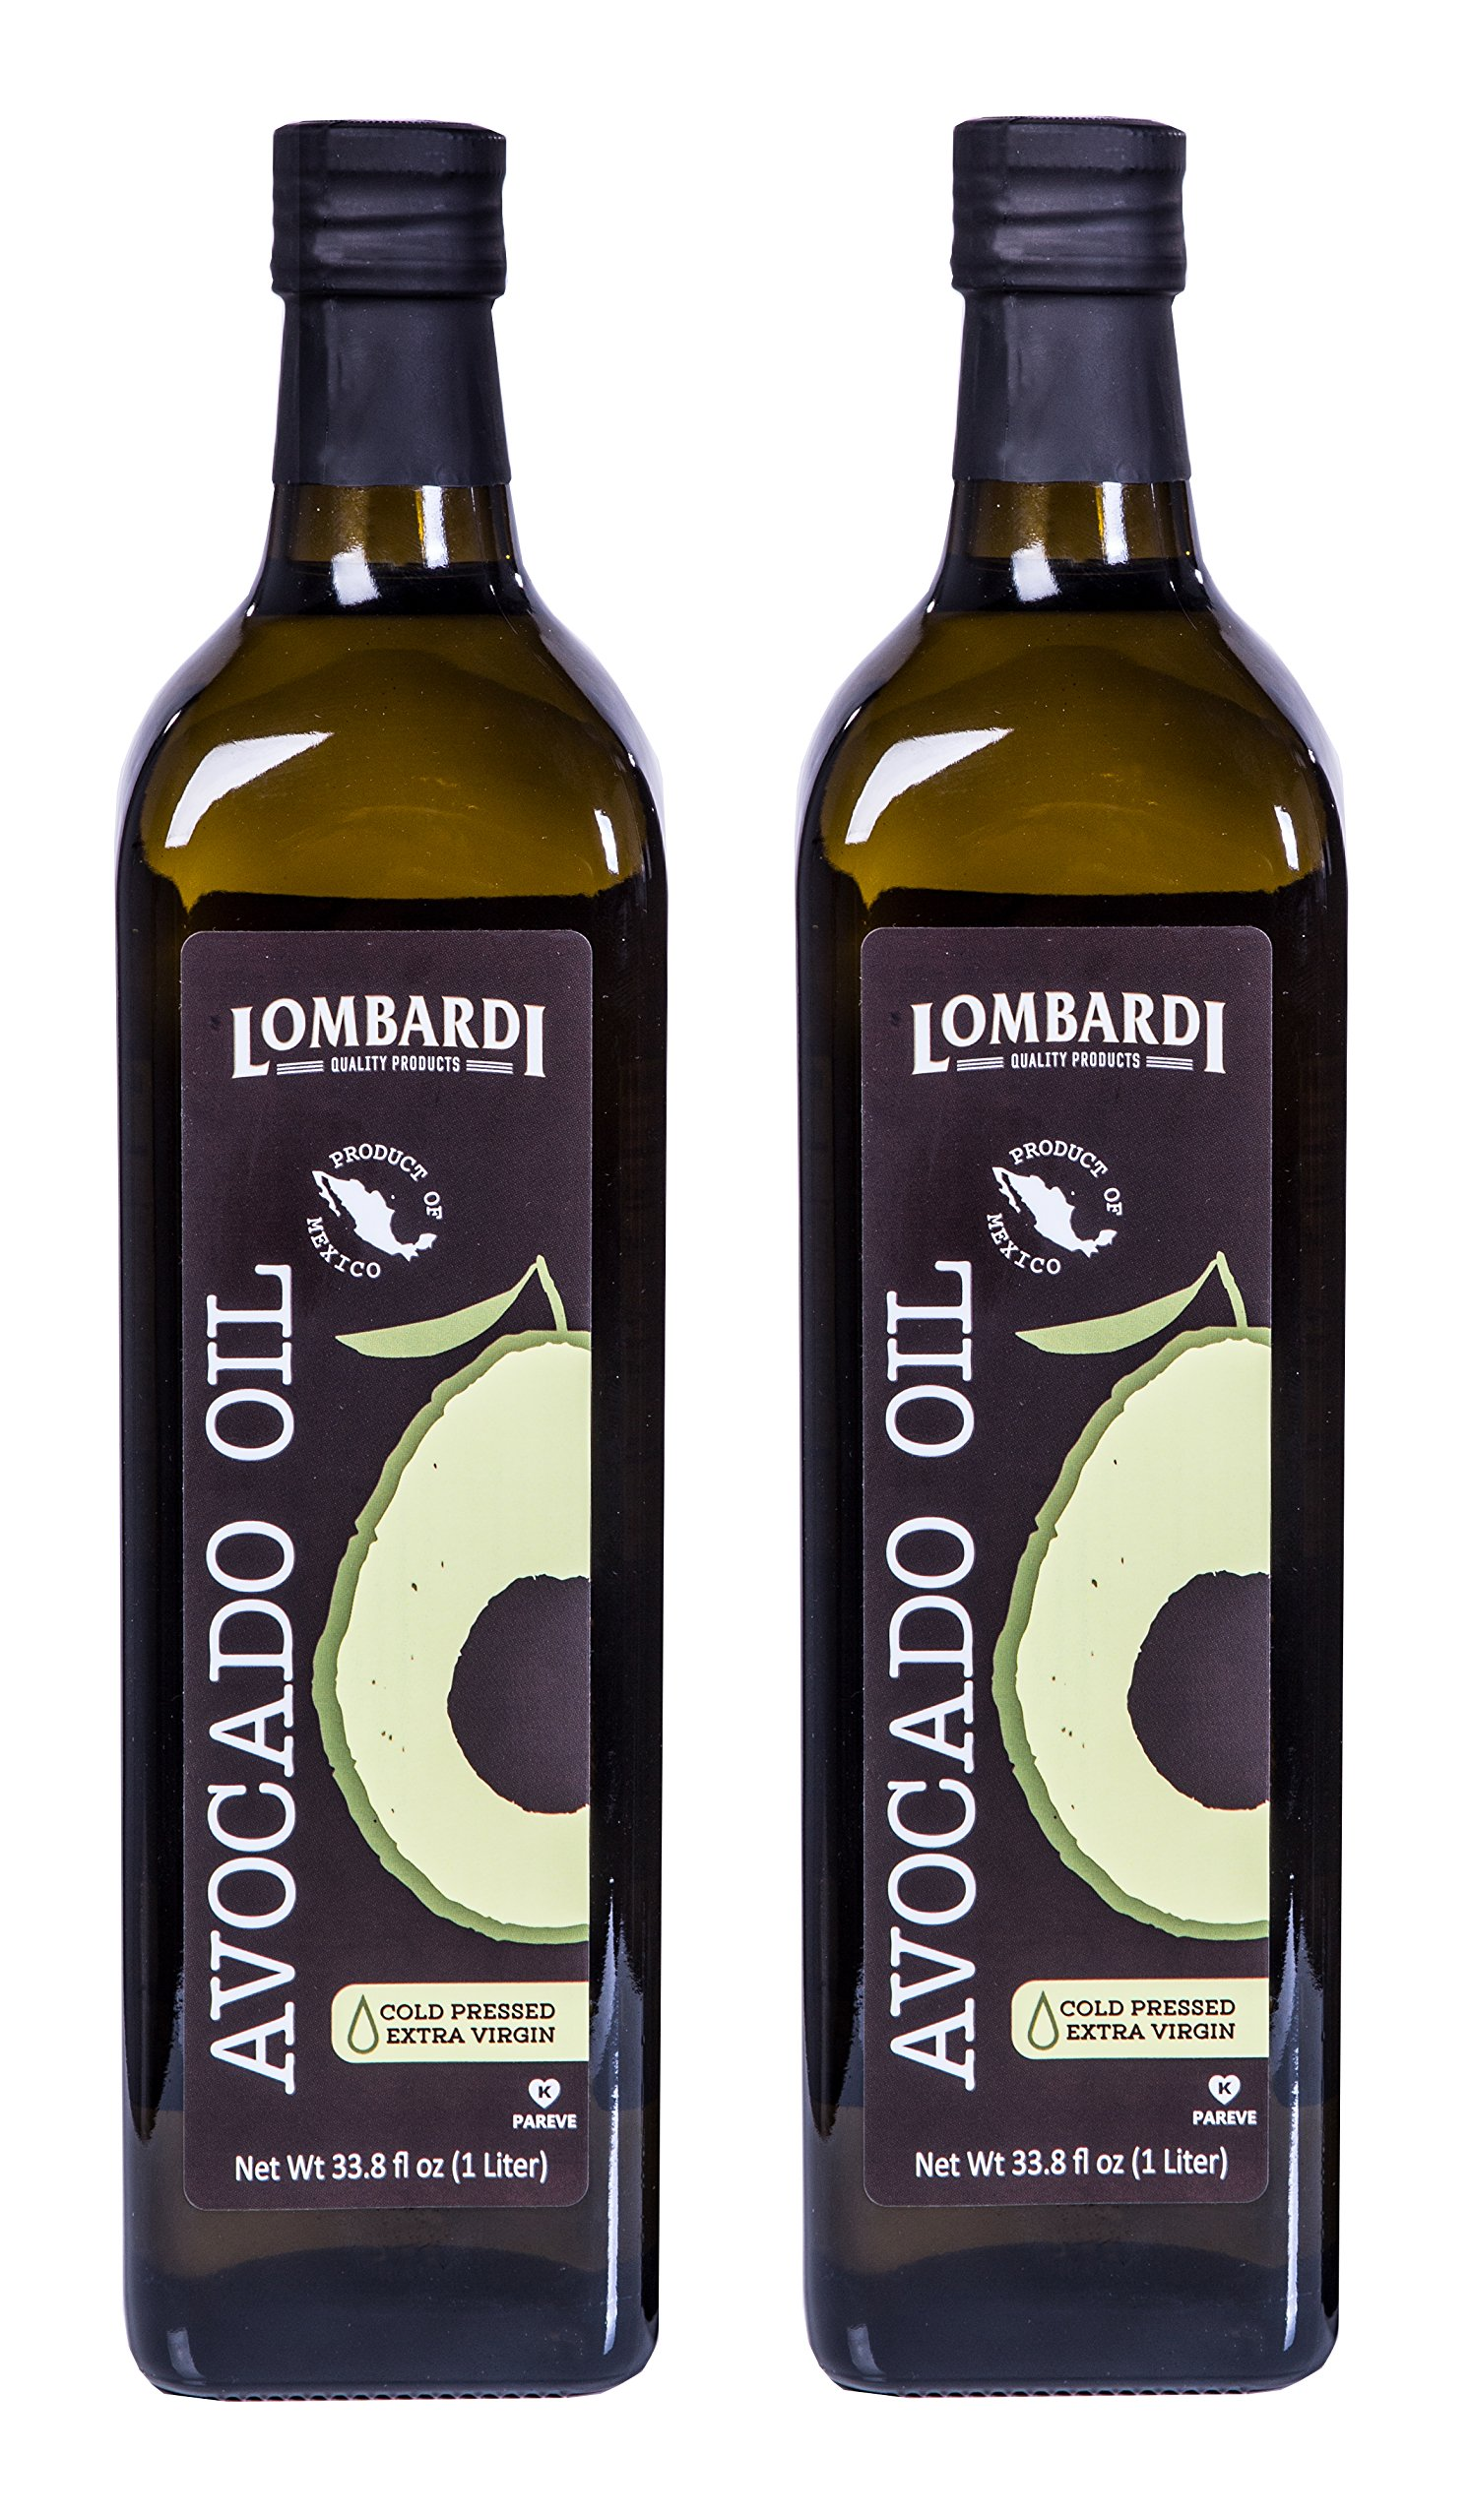 2 Pack Lombardi Extra Virgin Avocado Oil 67.6 fl oz (2 x 33.8 fl oz) Premium Quality 2 Liters (2 x 1 Liter) Kosher Non-GMO Product of Mexico Cold Pressed for Cooking, Backing, Salad Dressing by Lombardi